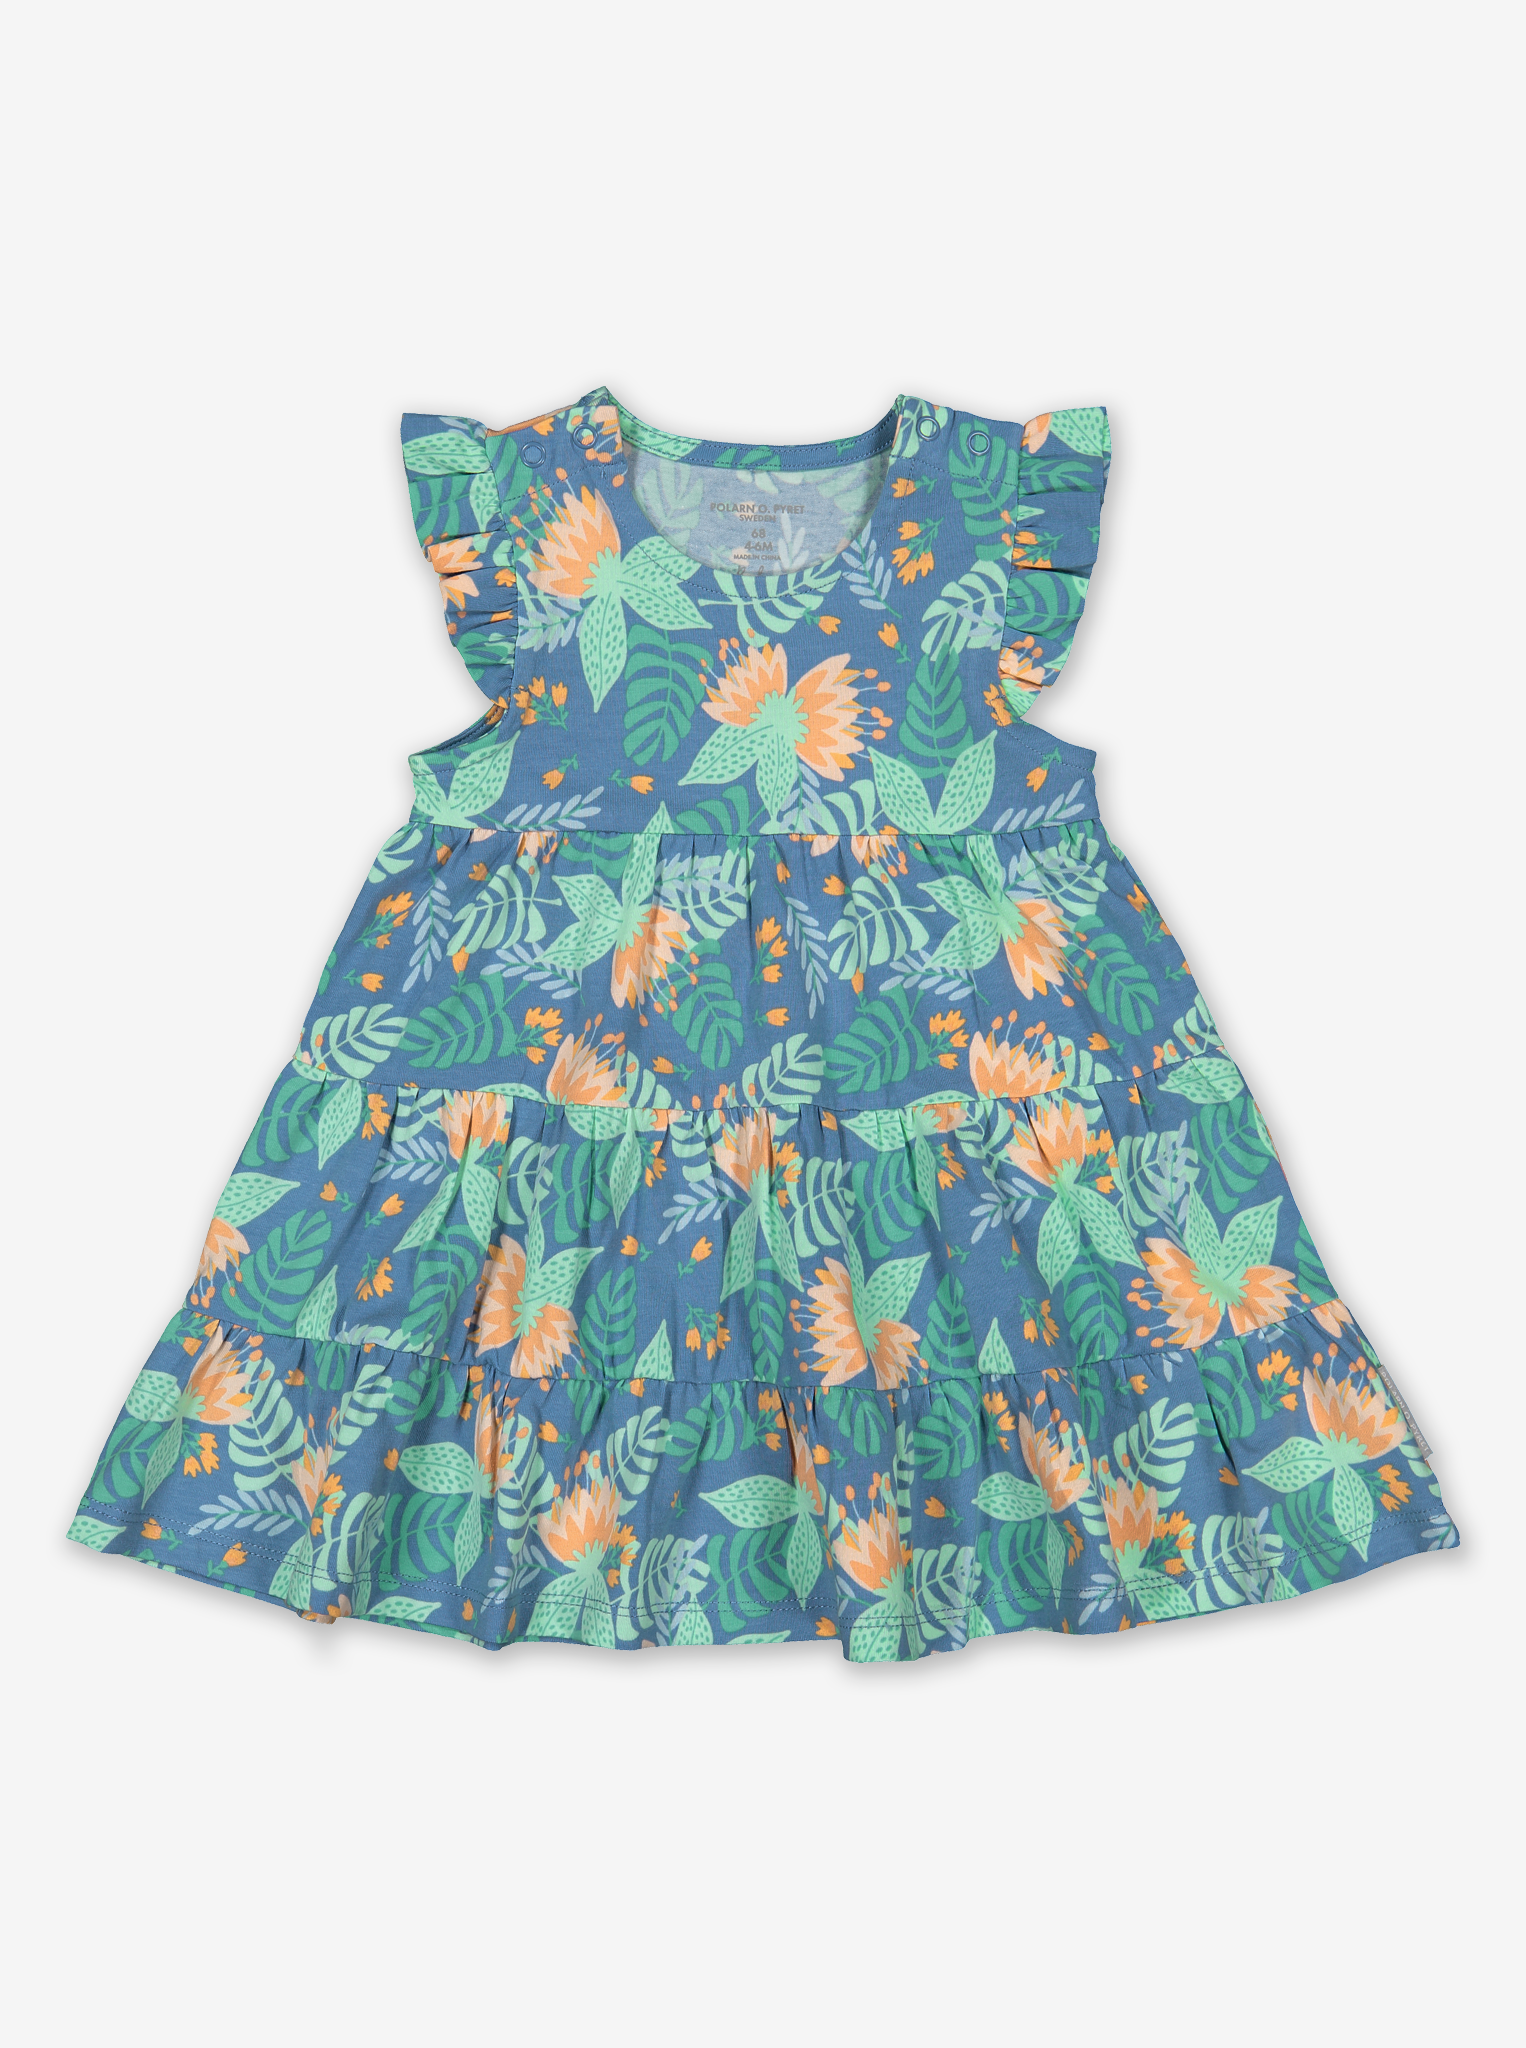 Tropical Print Baby Dress-Girl-0-1y-Turquoise